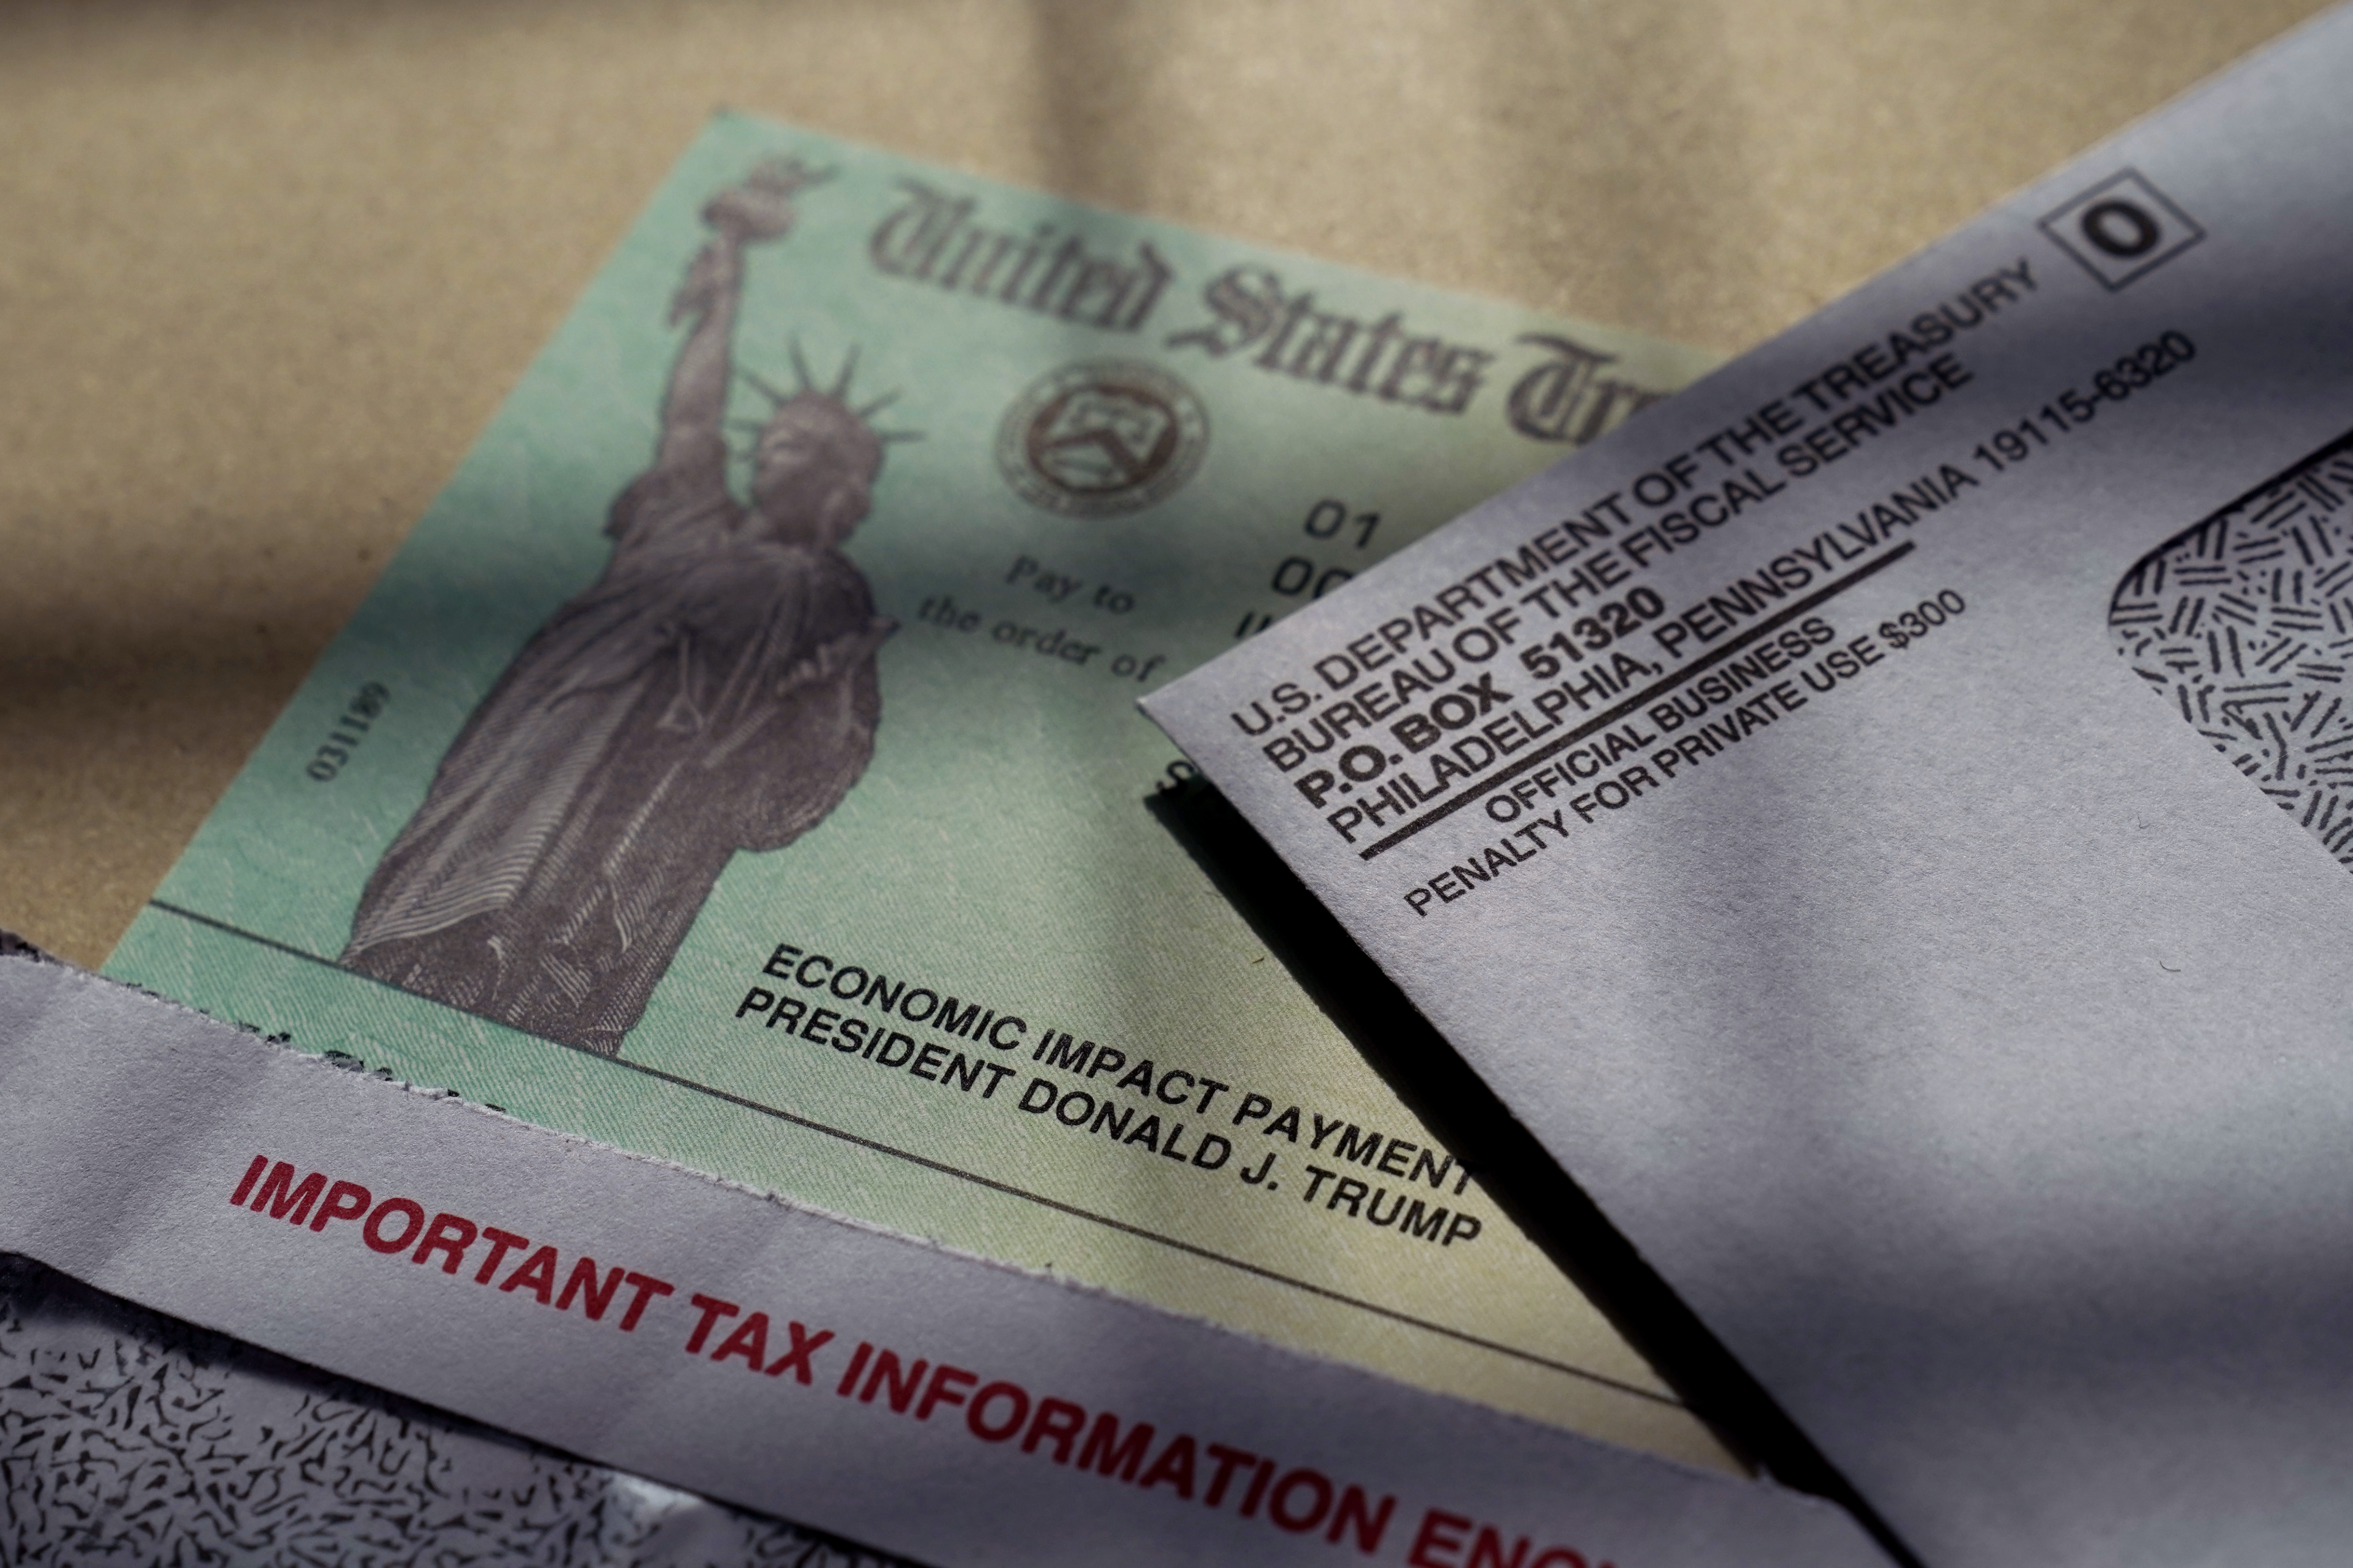 Third stimulus check update: Feds likely to start sending $1,400 payments by late March - masslive.com